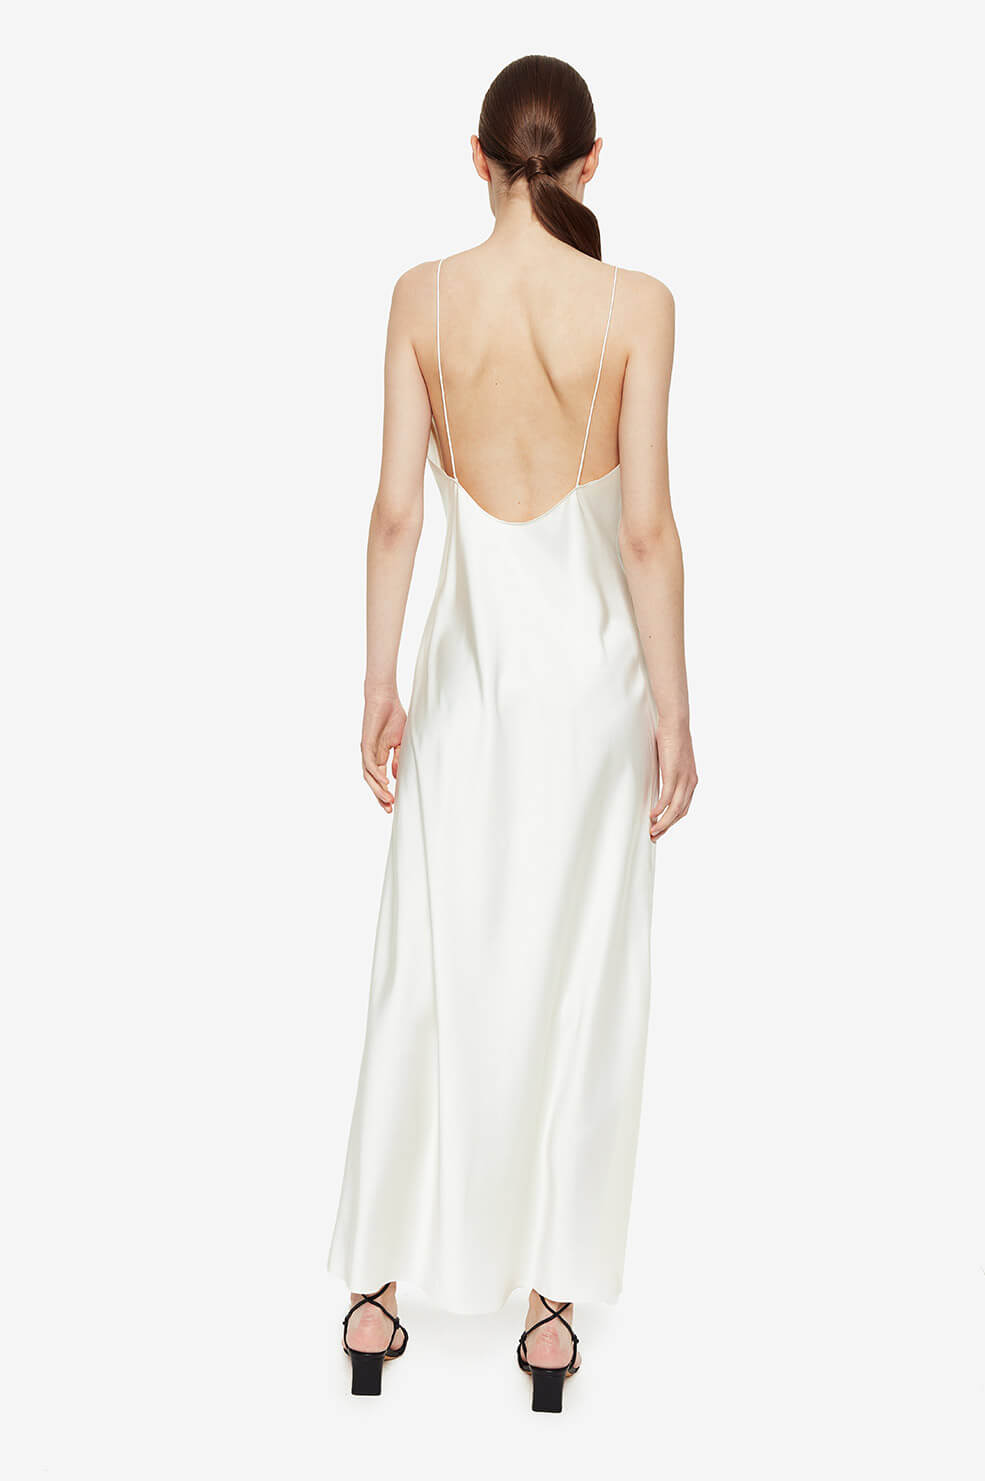 ANINE BING Chloe Dress - Ivory